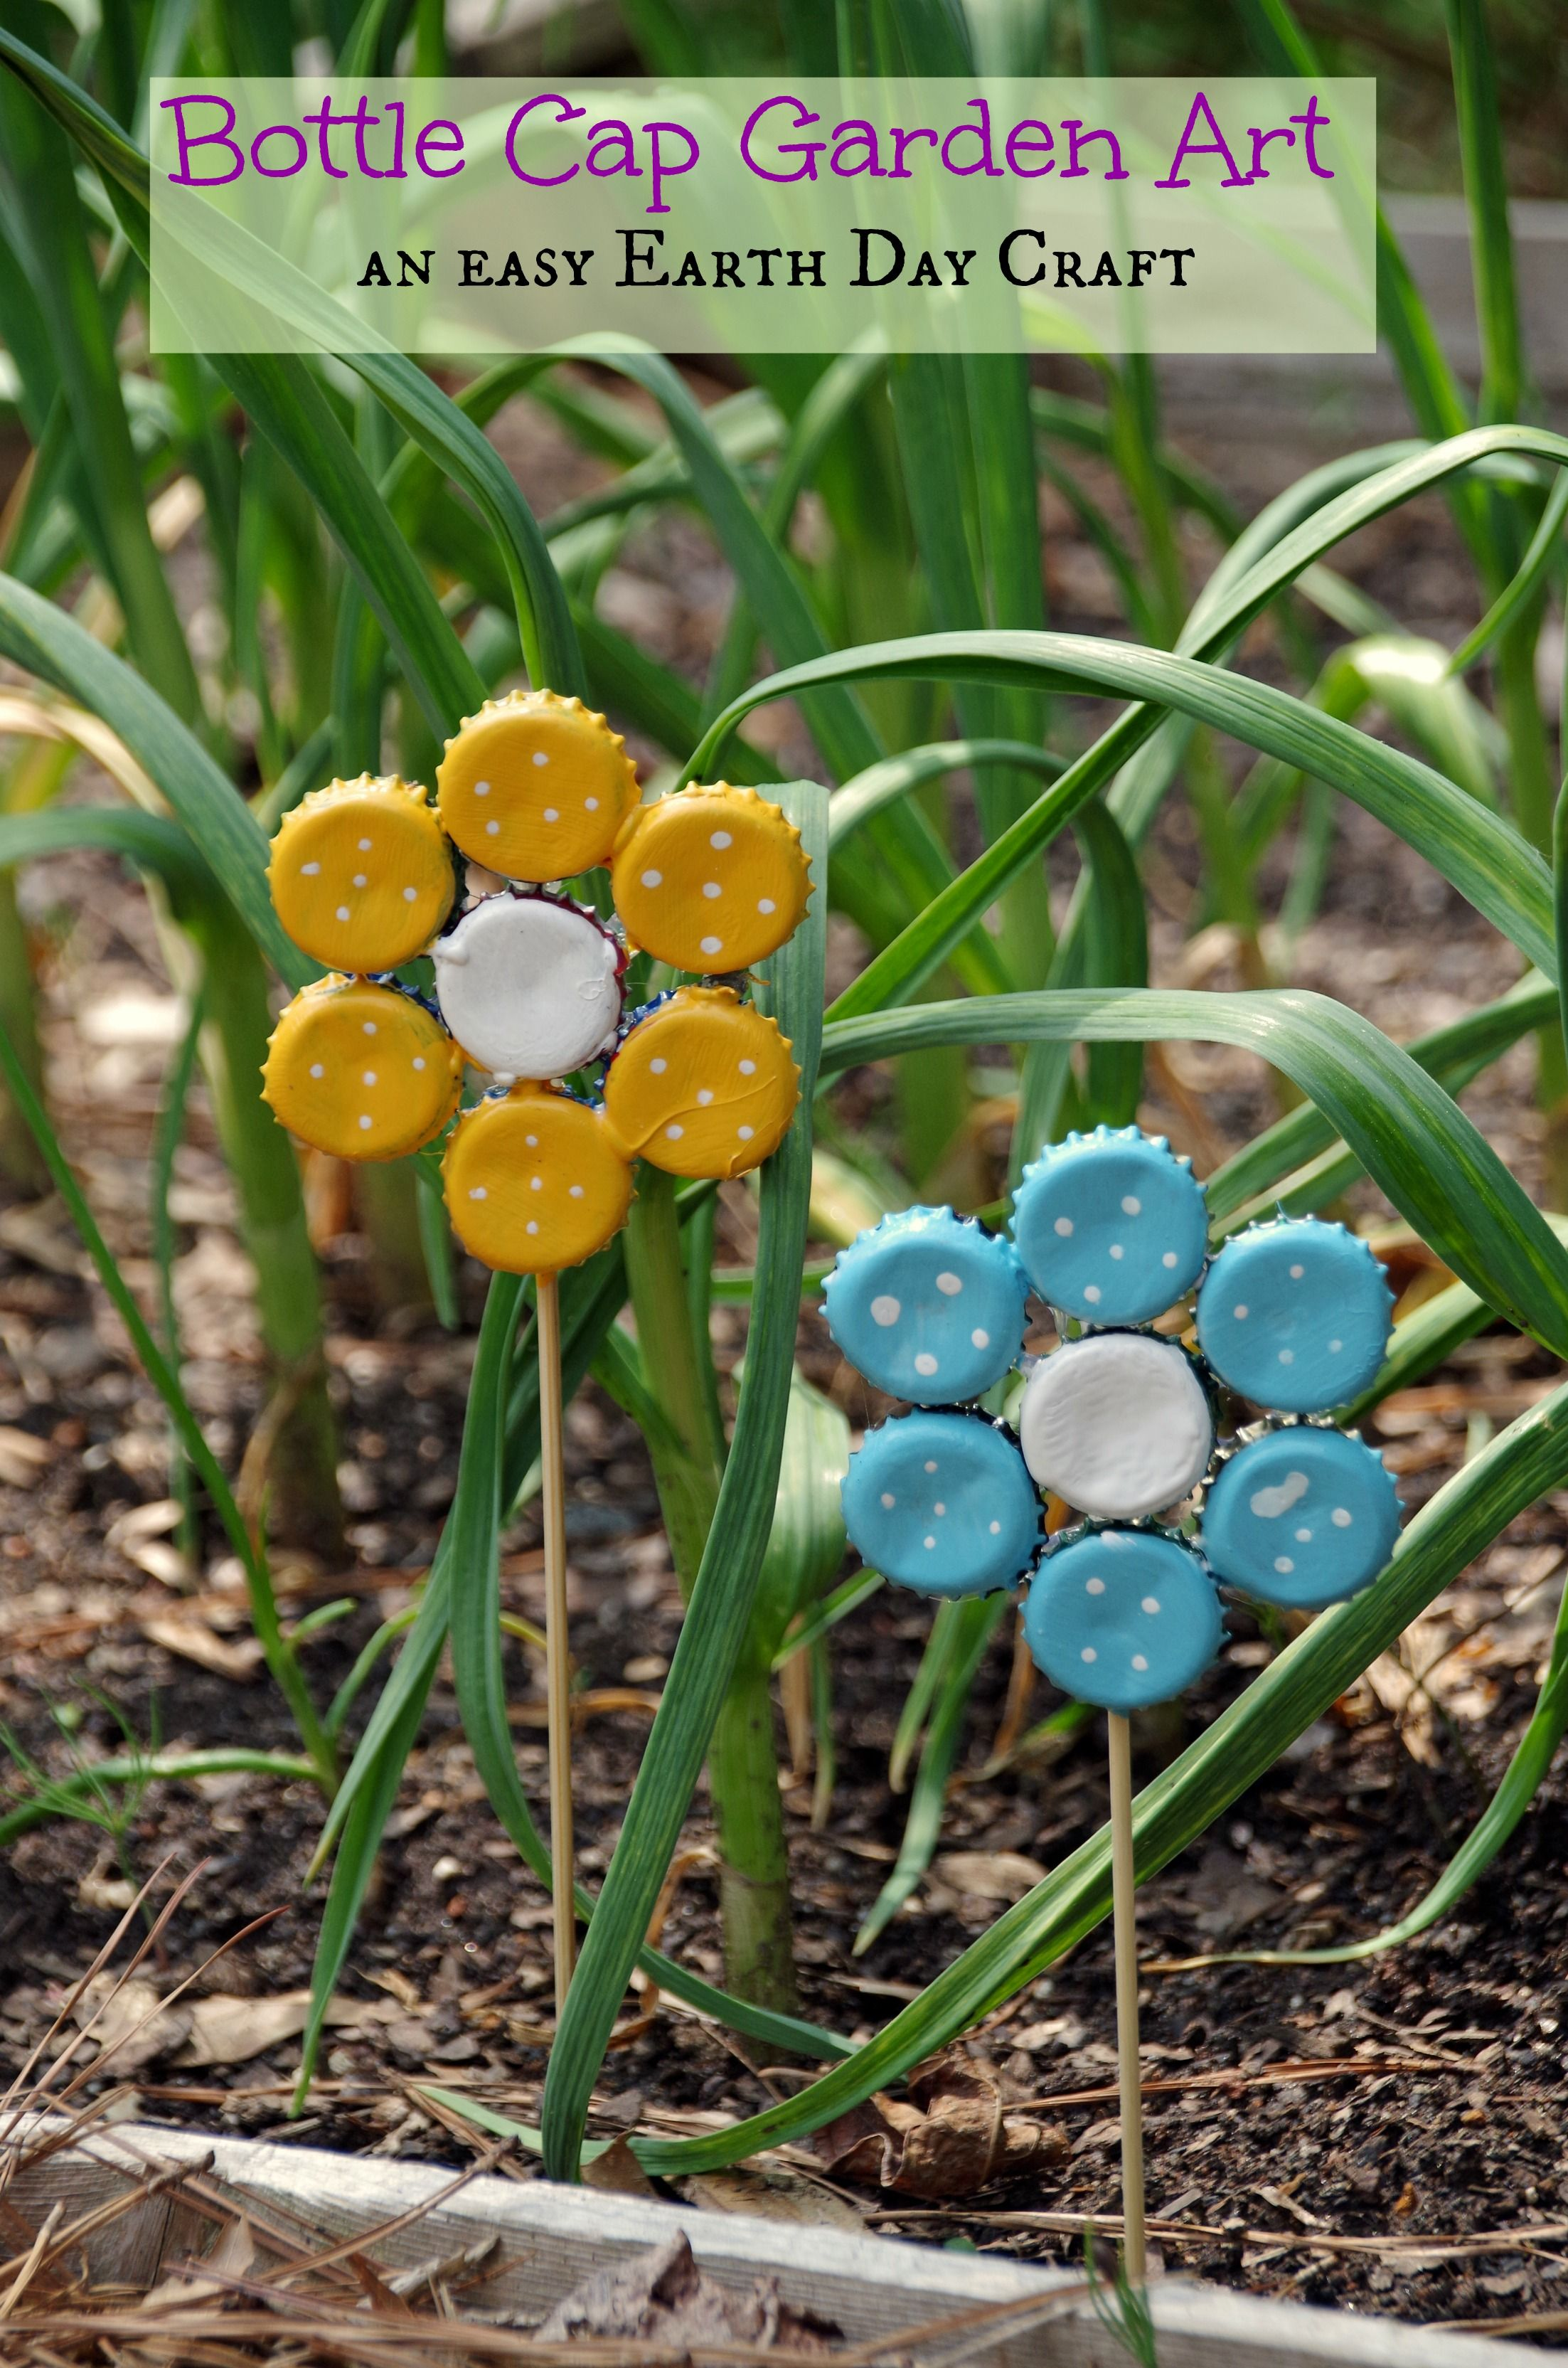 17 Creative Ways to Reuse Old Bottle Caps | Garden art, Cap and Bottle